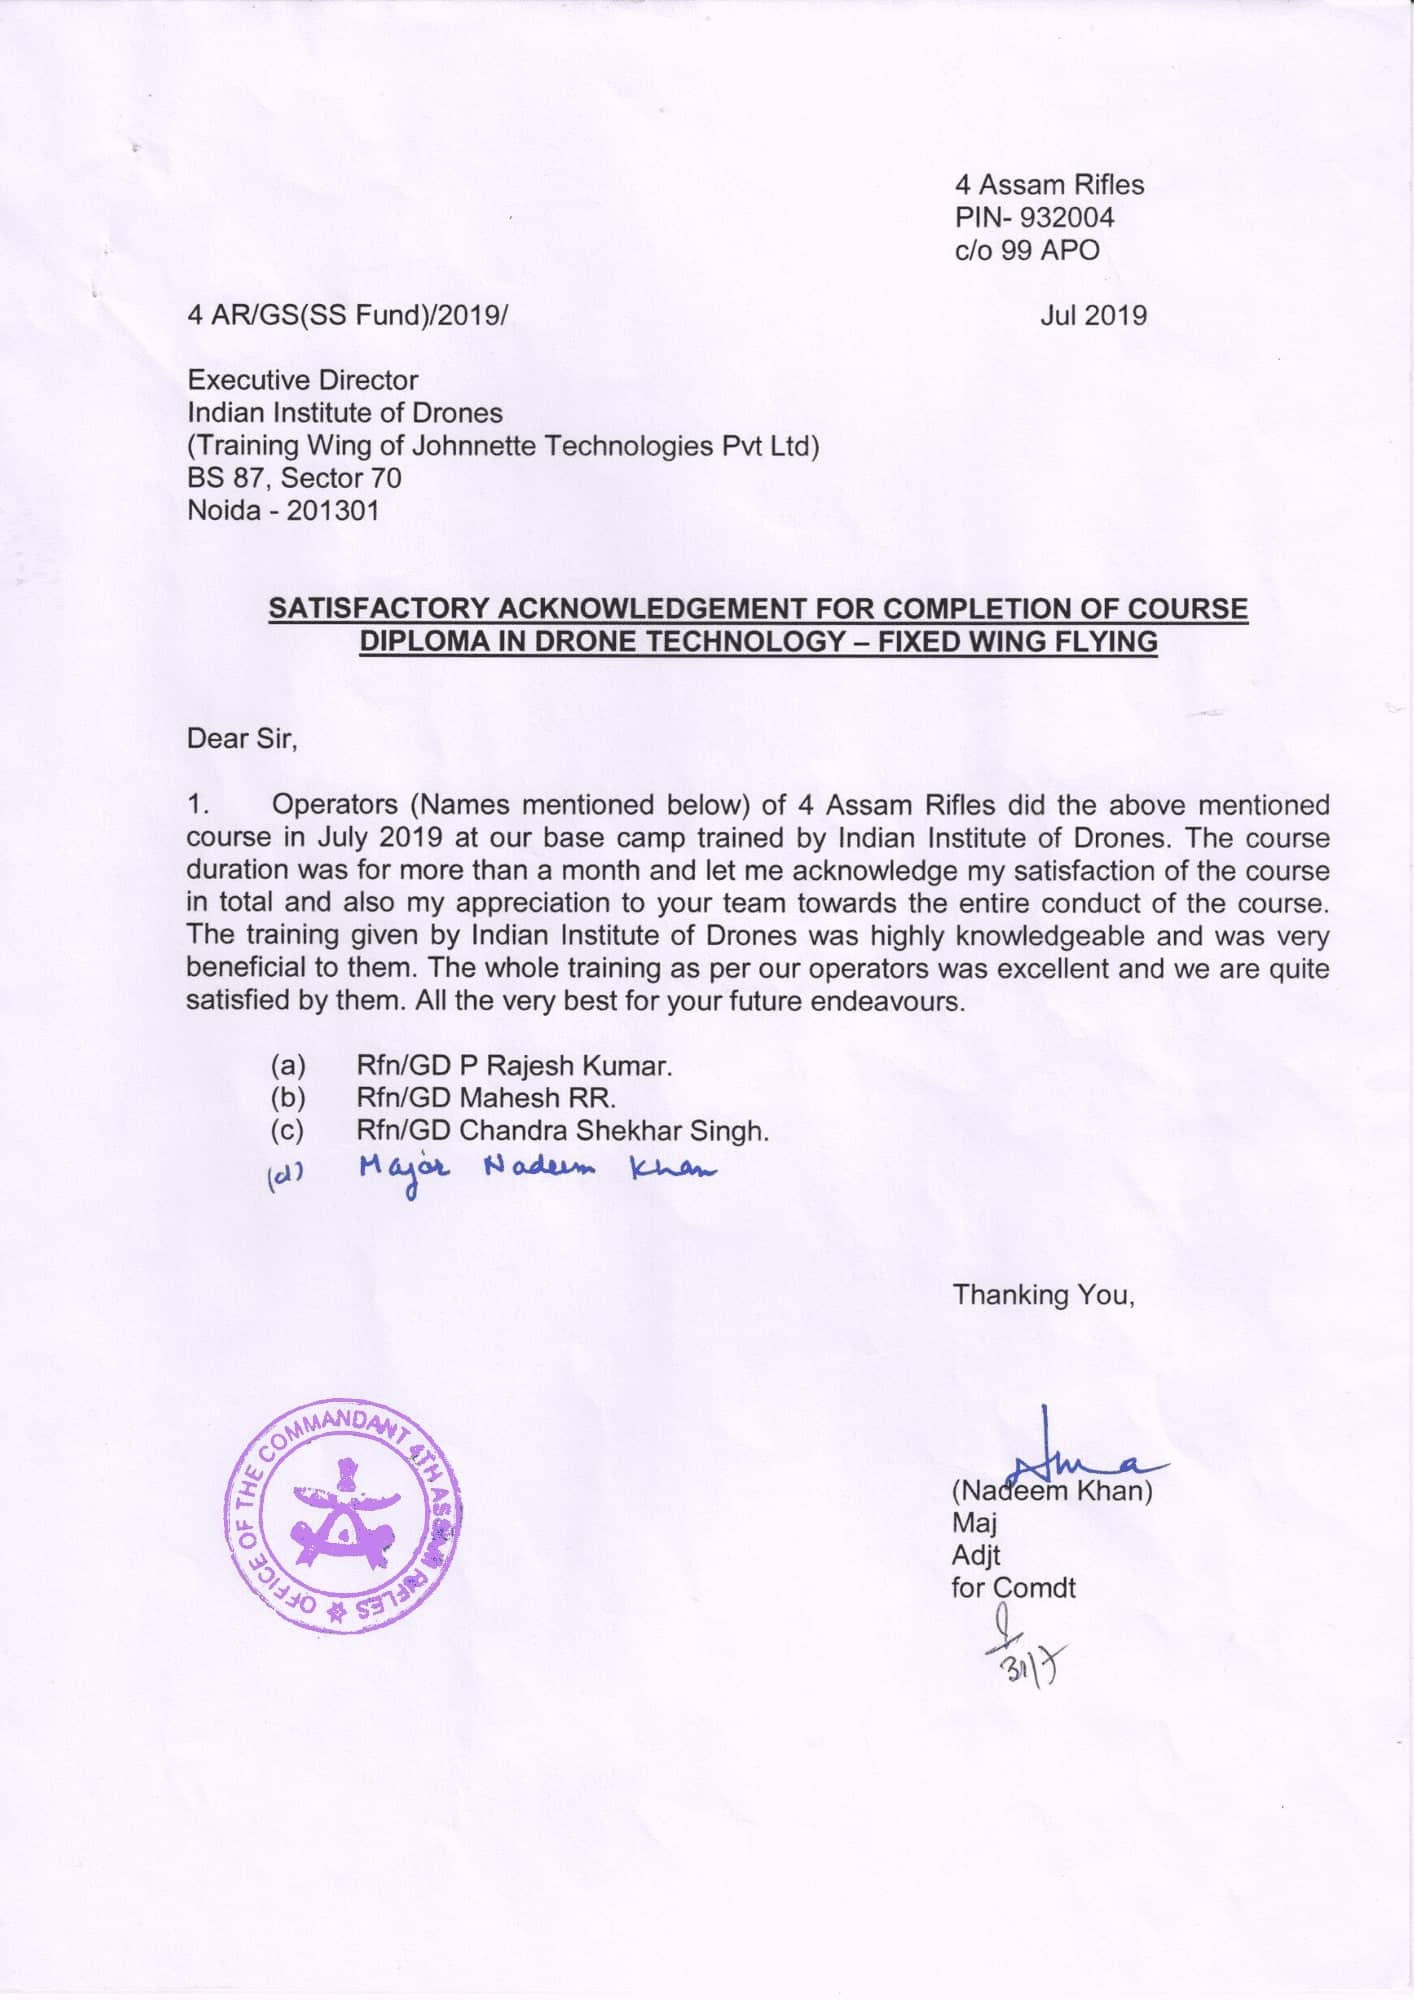 Satisfactory Letter from Assam Rifles